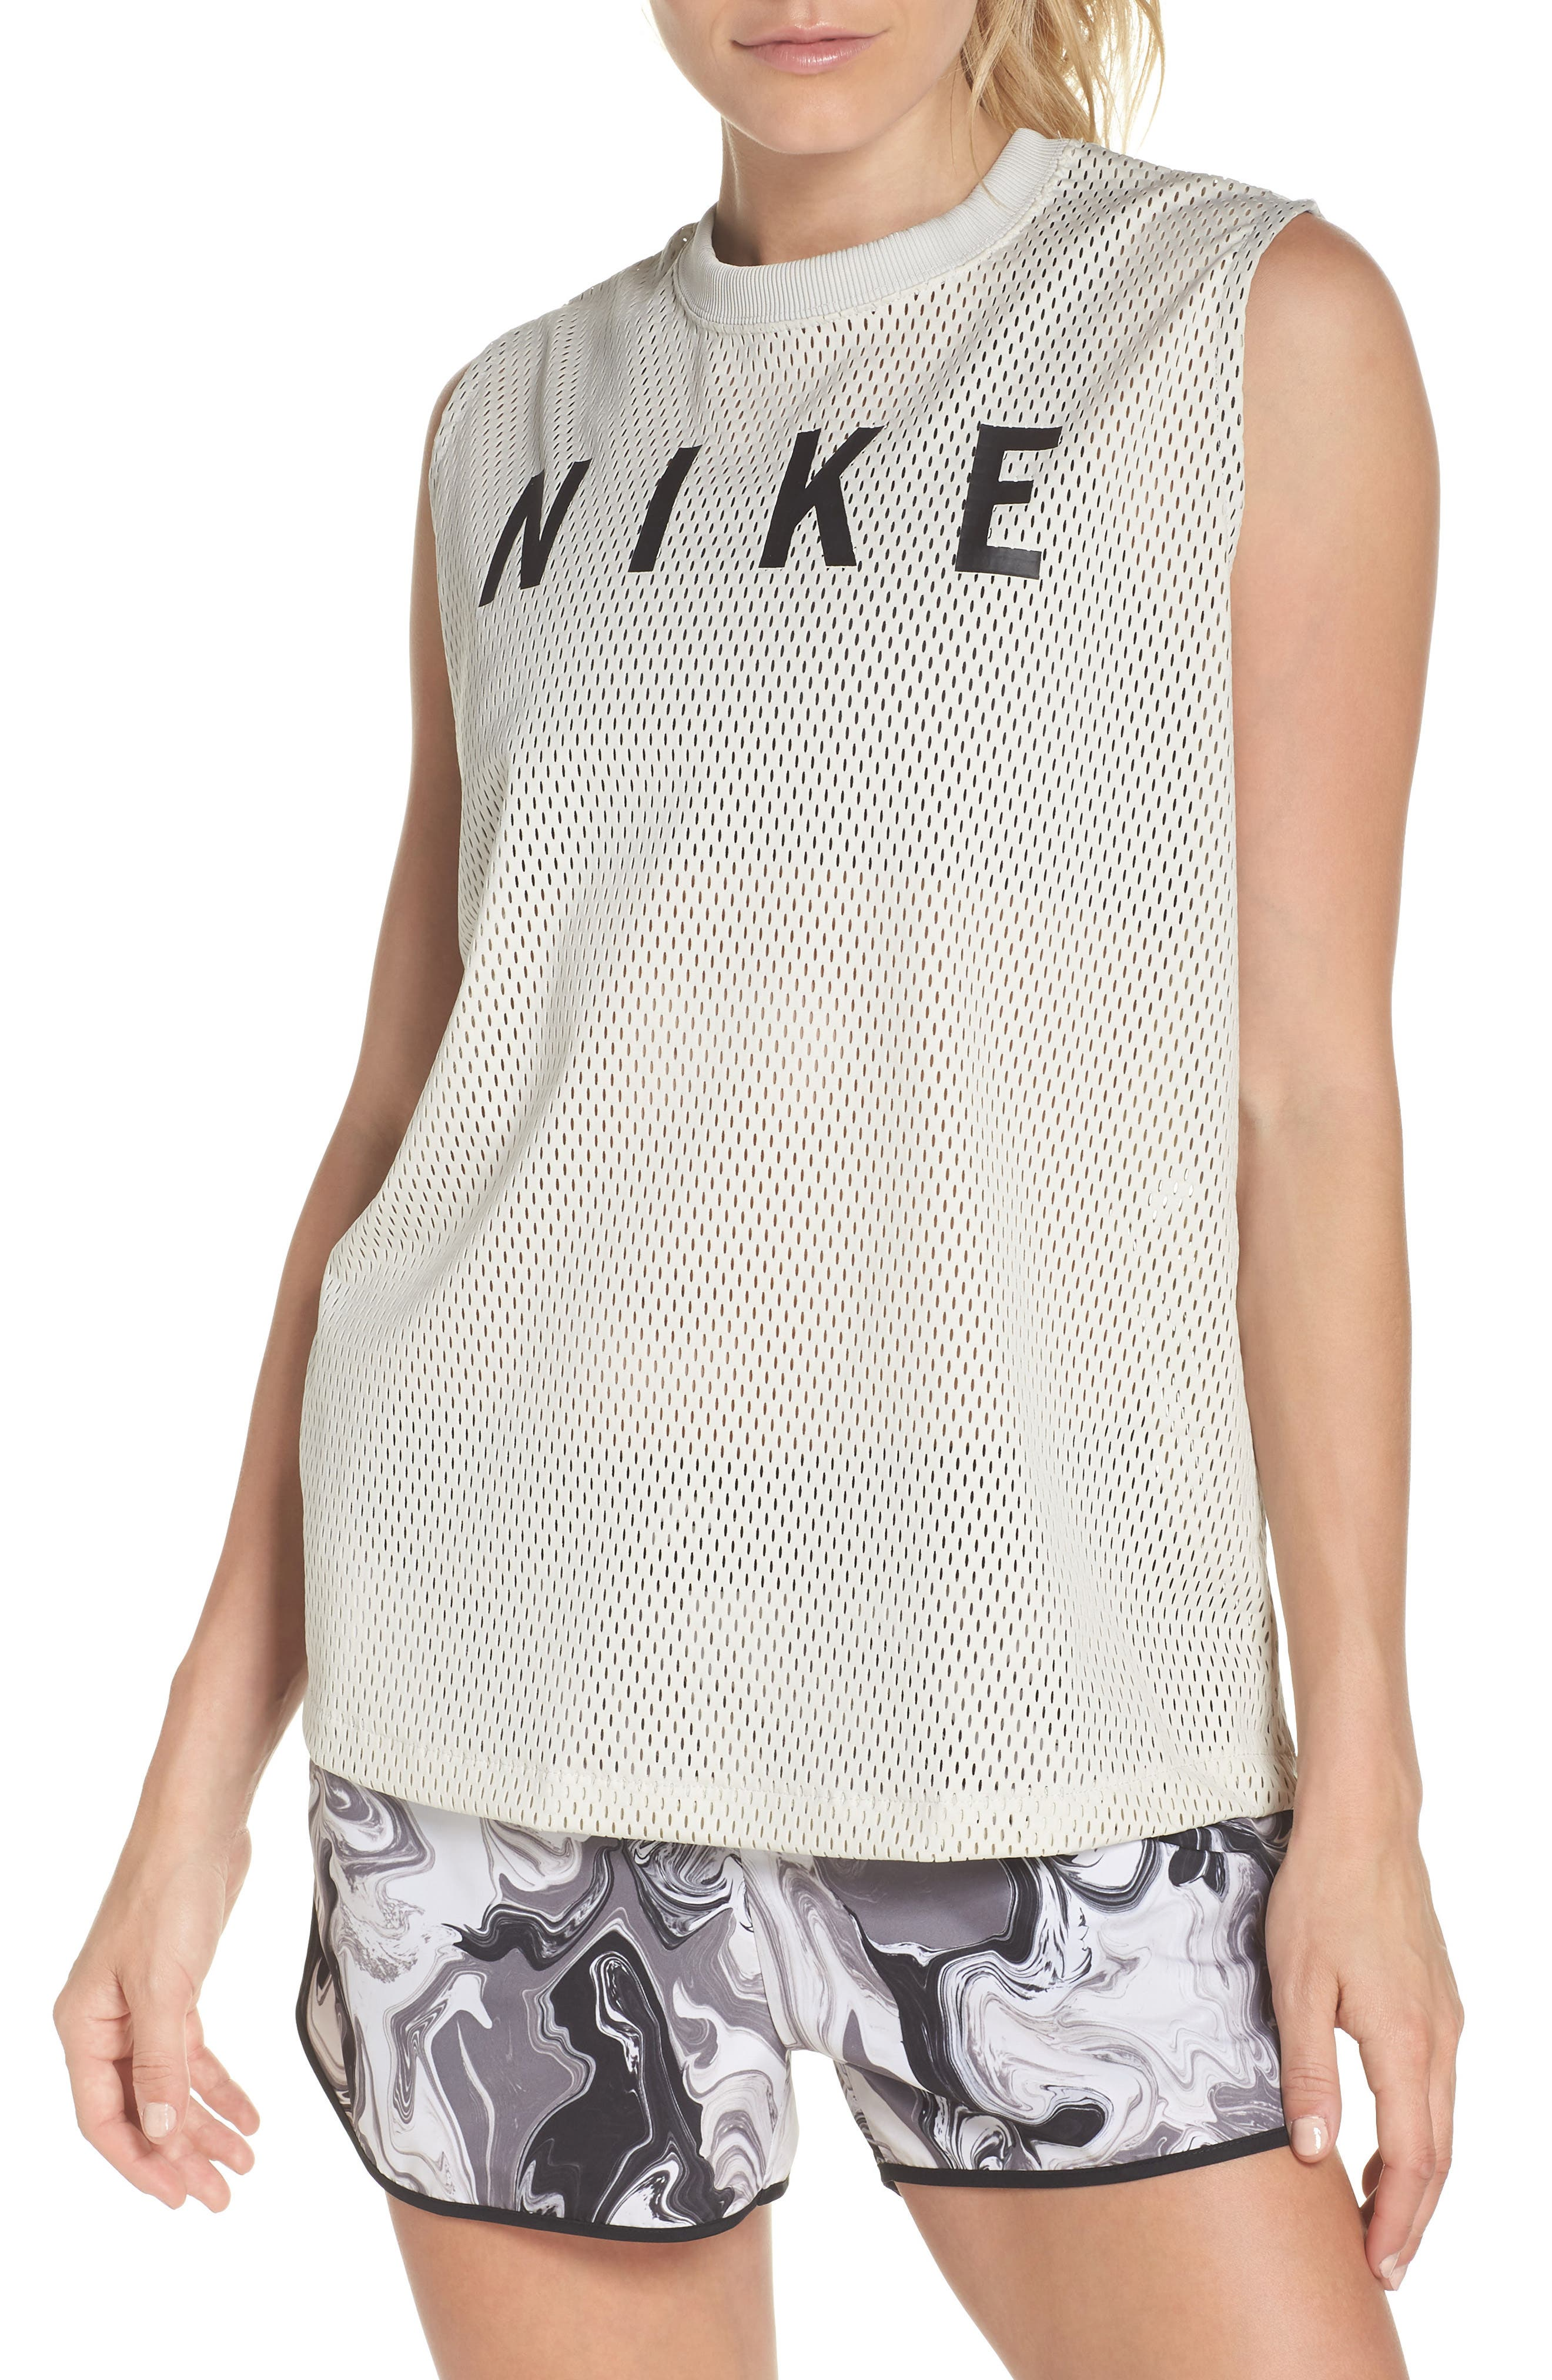 Sportswear Women's Dry Mesh Muscle Tank,                             Alternate thumbnail 3, color,                             250